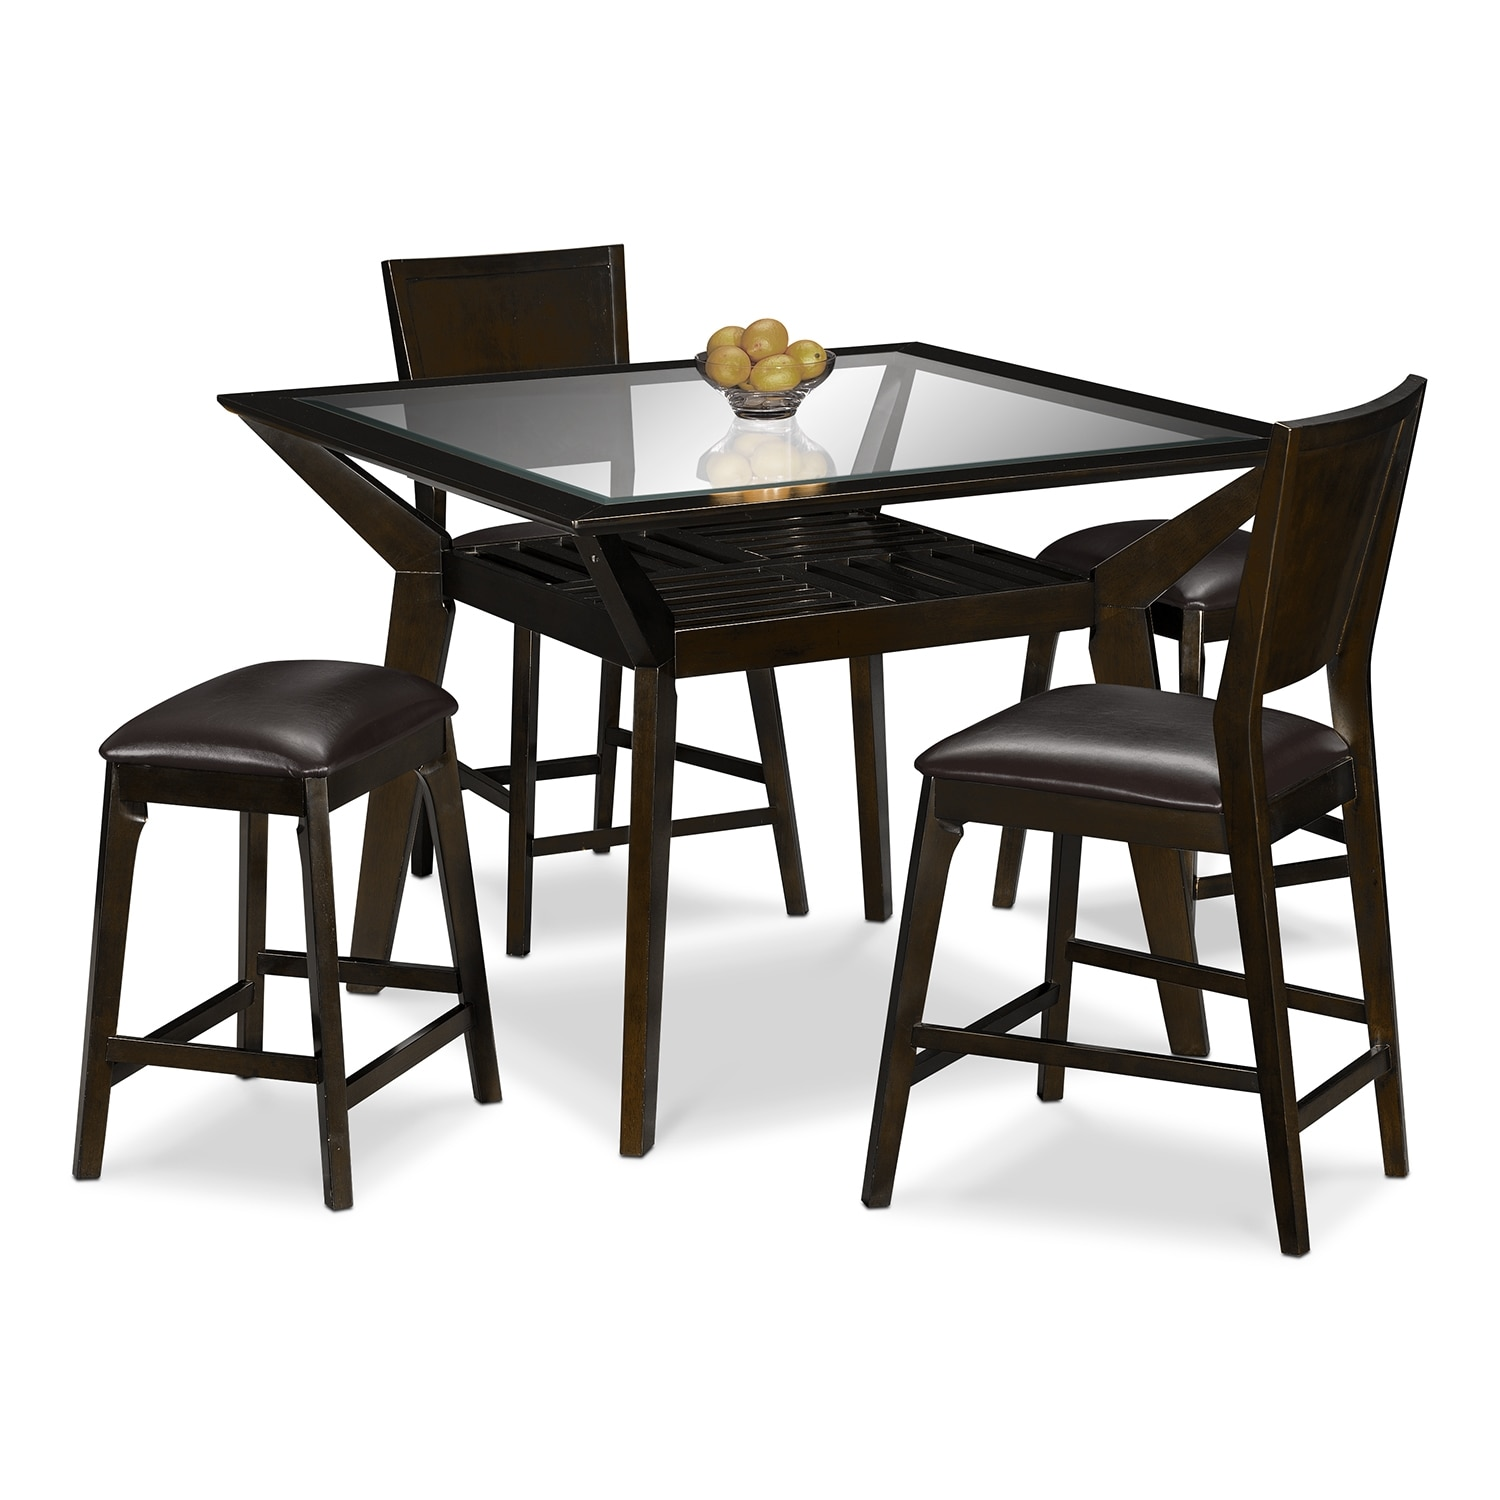 mystic table 2 chairs and 2 backless stools merlot and chocolate